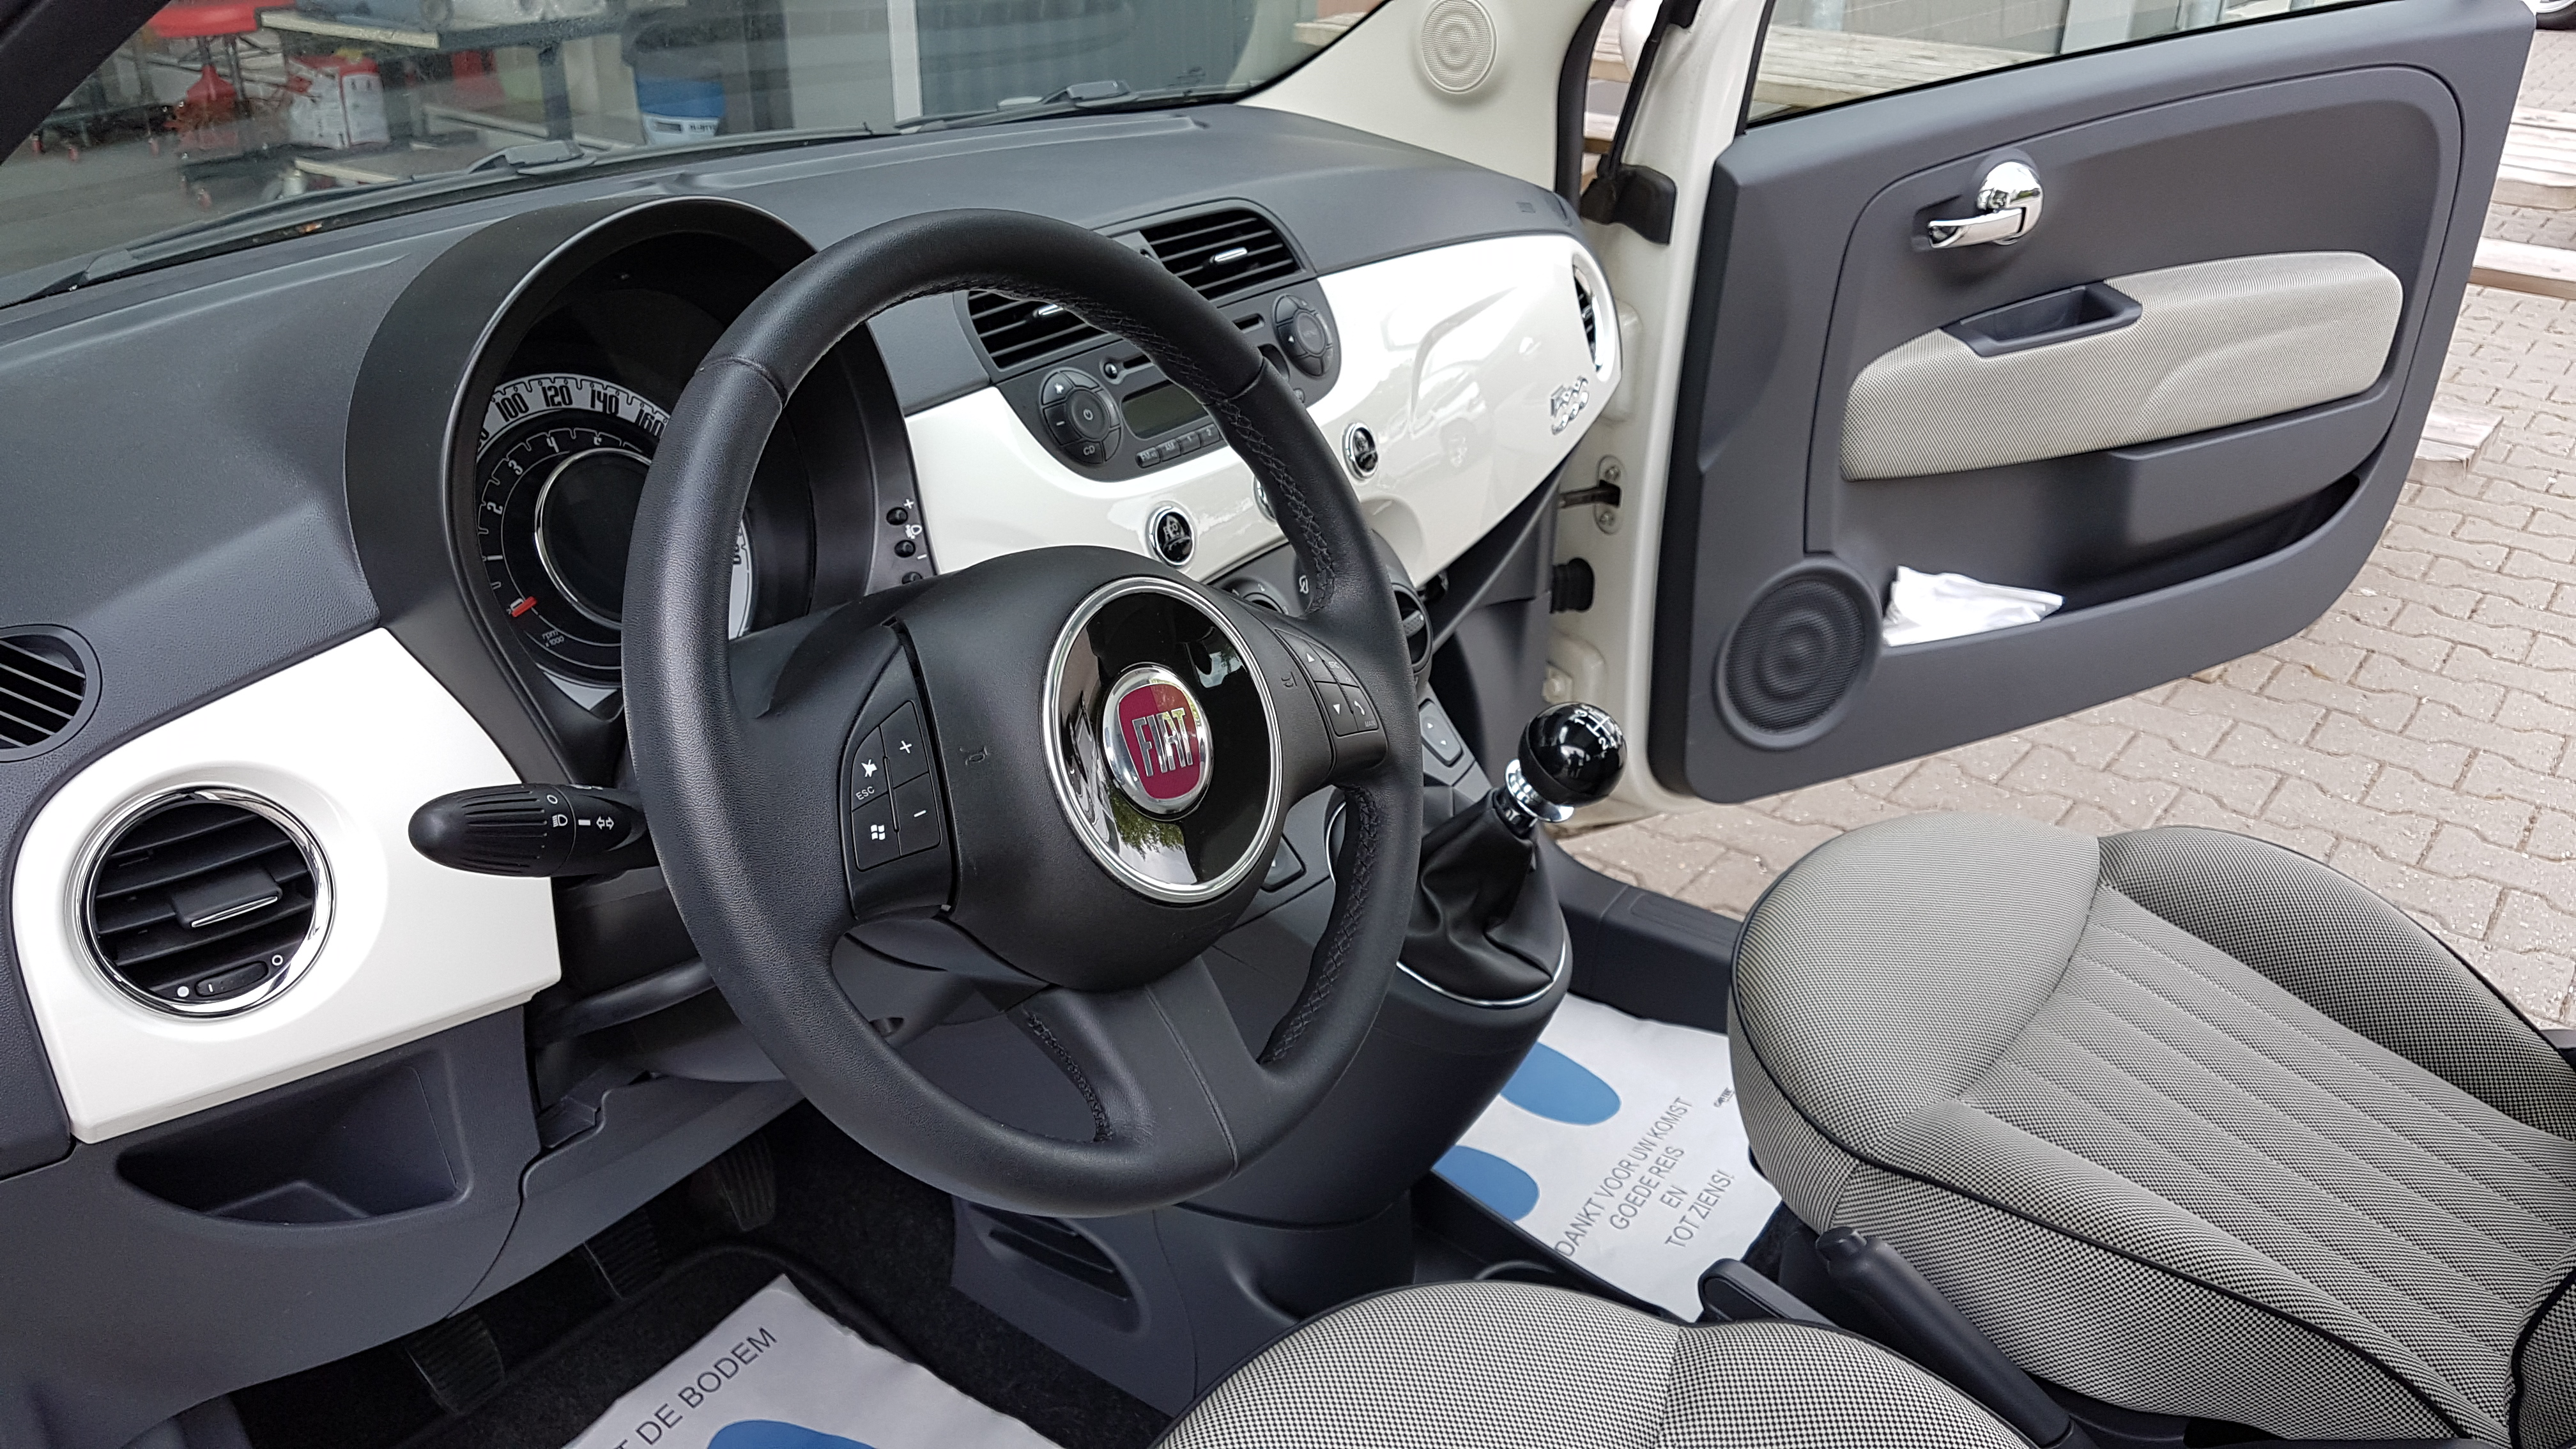 fiat 500 interieur cleaning stercleaning. Black Bedroom Furniture Sets. Home Design Ideas